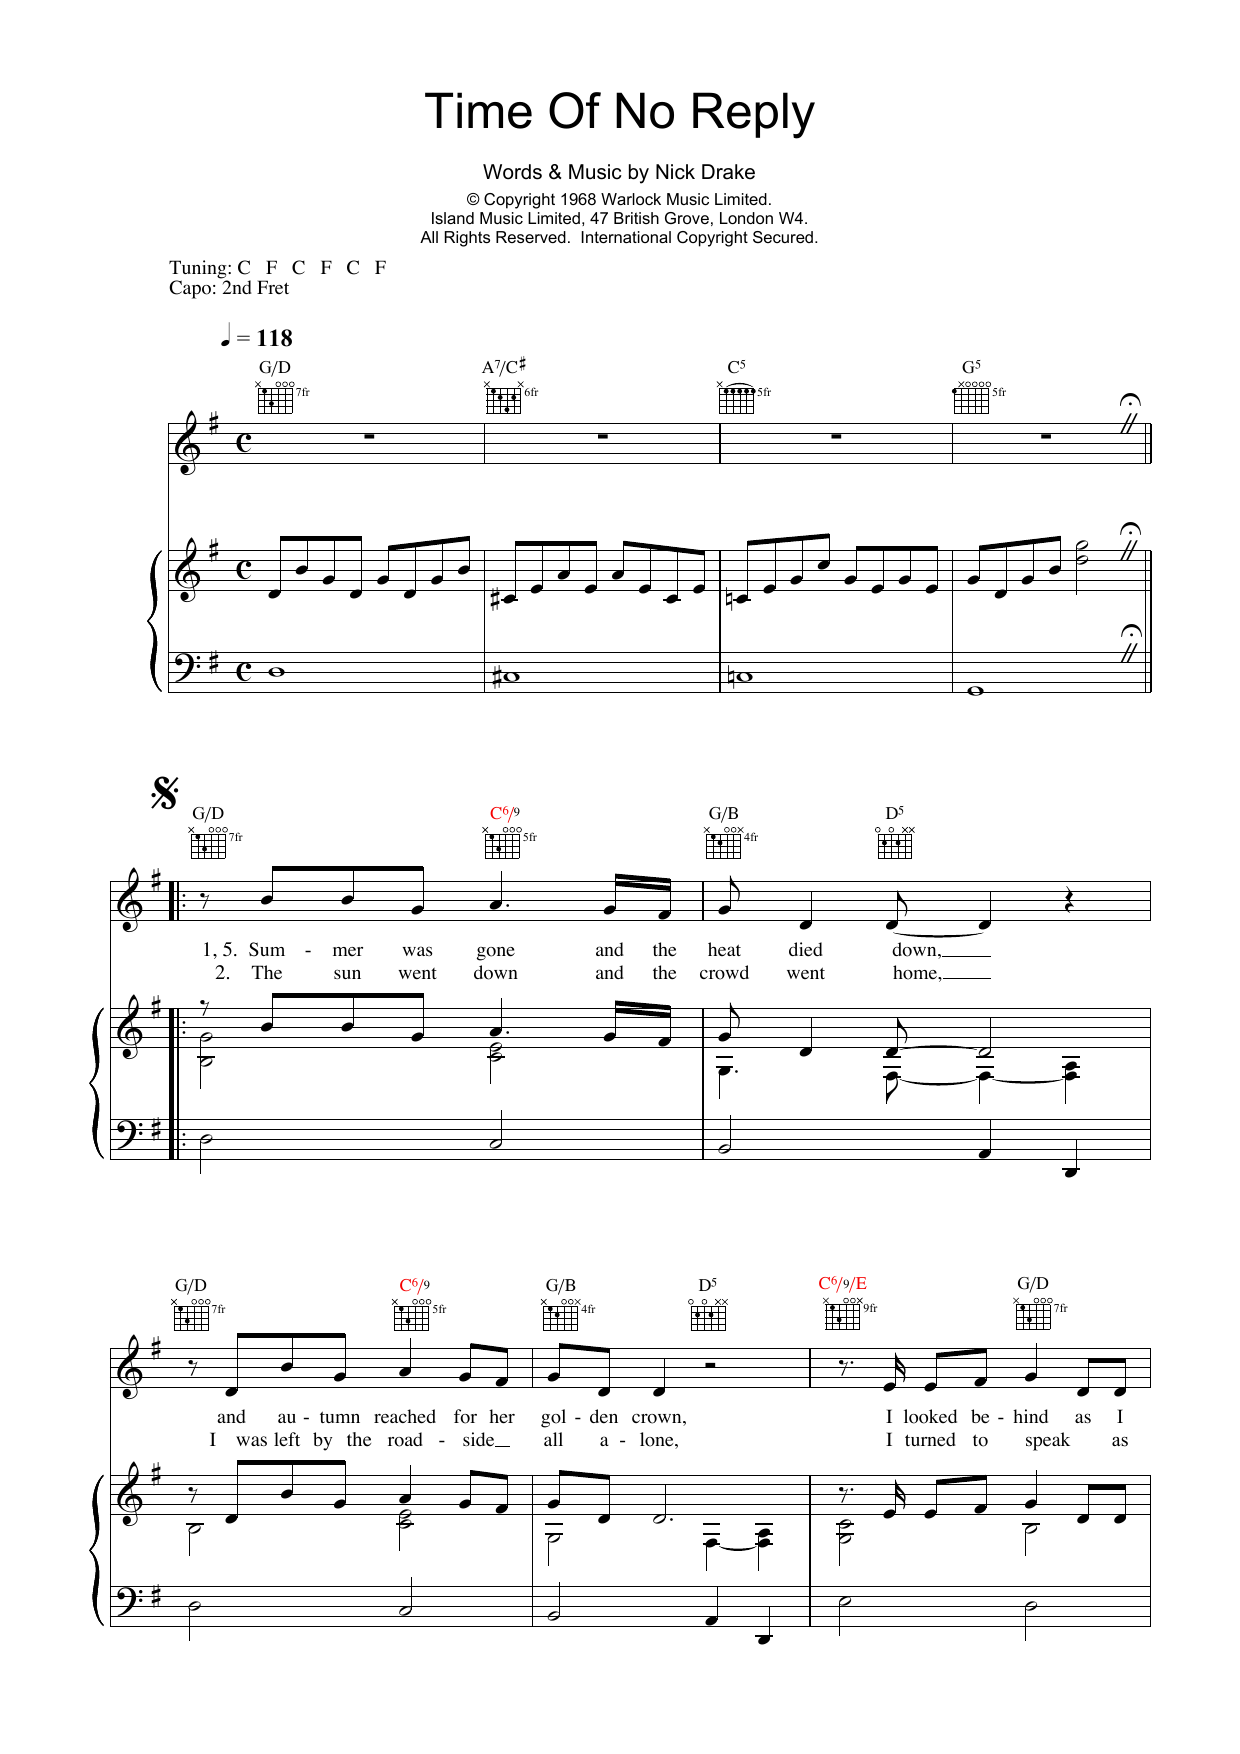 Time Of No Reply Sheet Music